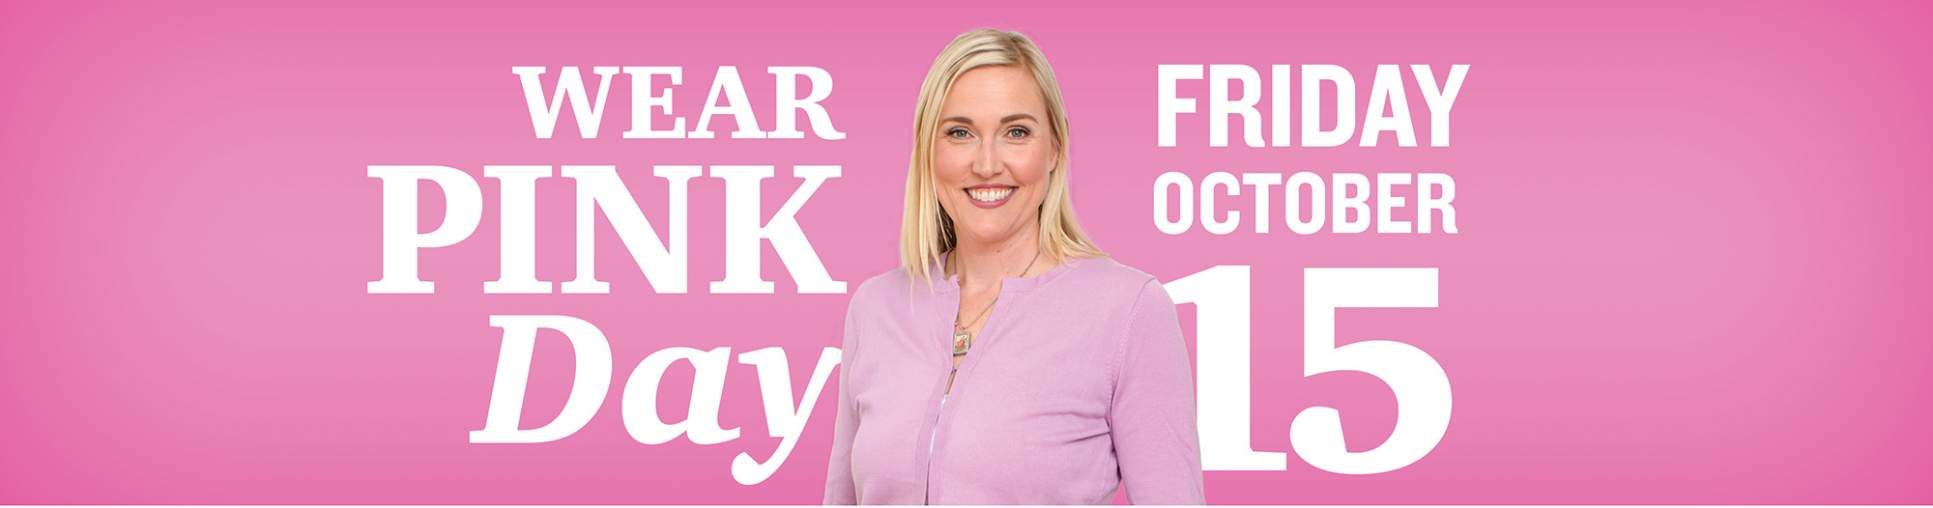 Wear Pink Day - Friday, October 15th